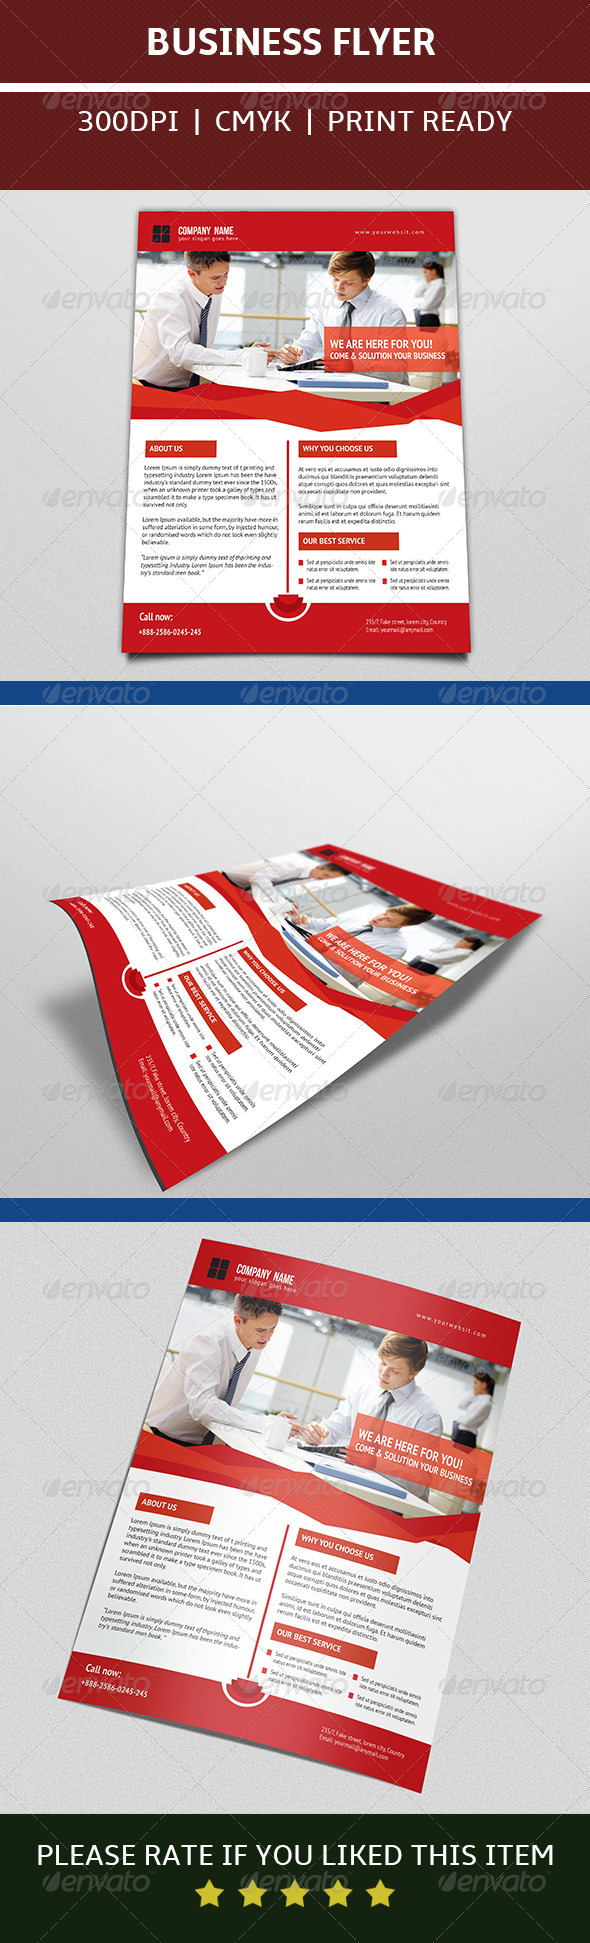 GraphicRiver Business Flyer 7595047